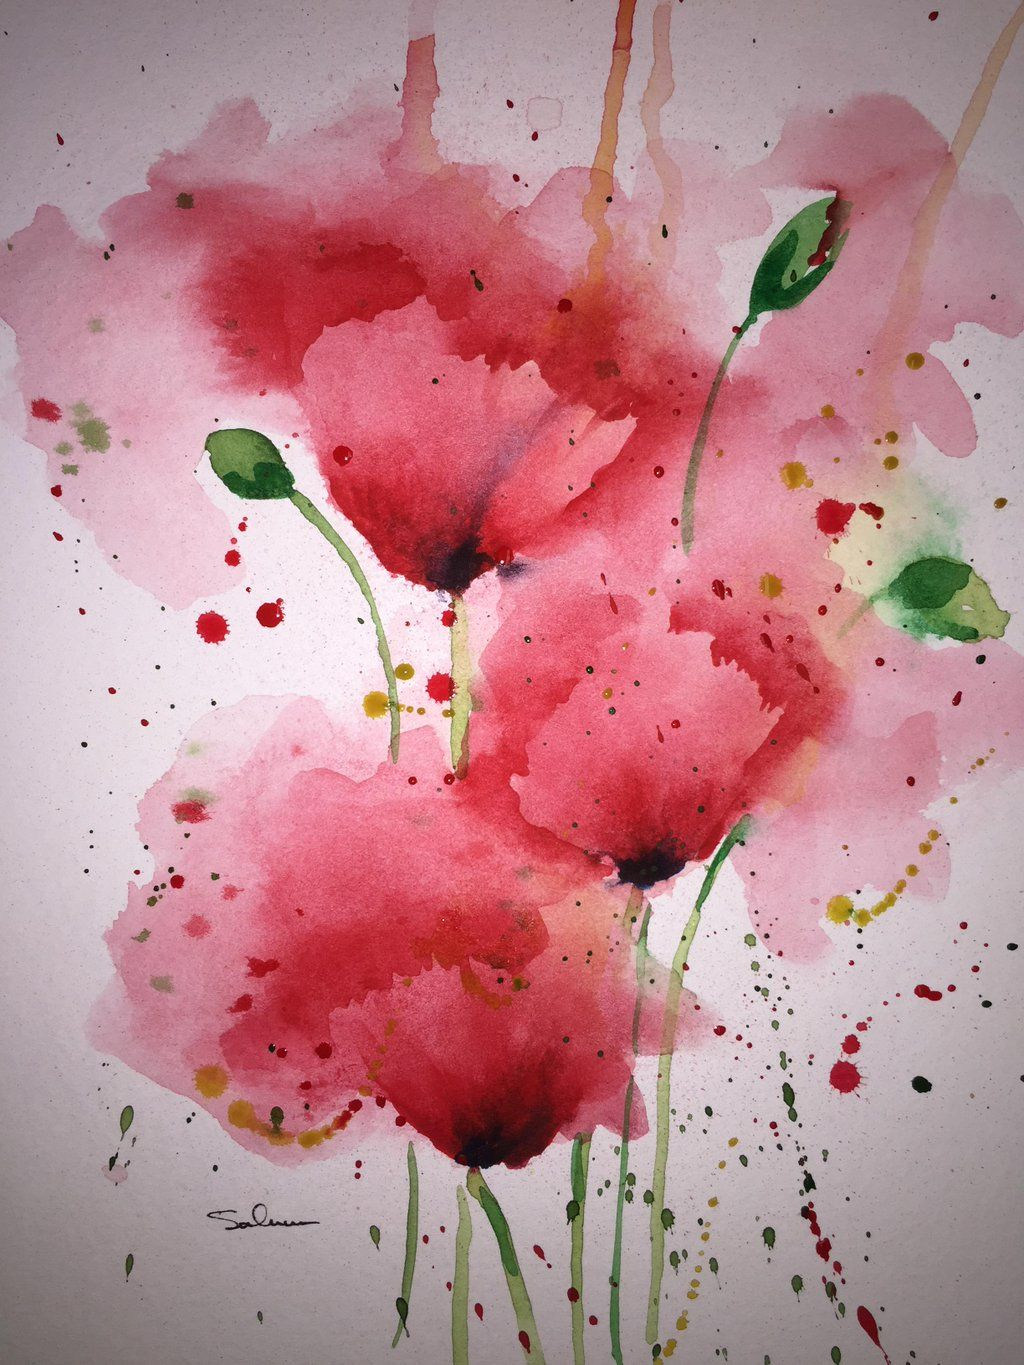 Michael Salmon On Watercolor Poppies Flower Art Watercolor Flowers